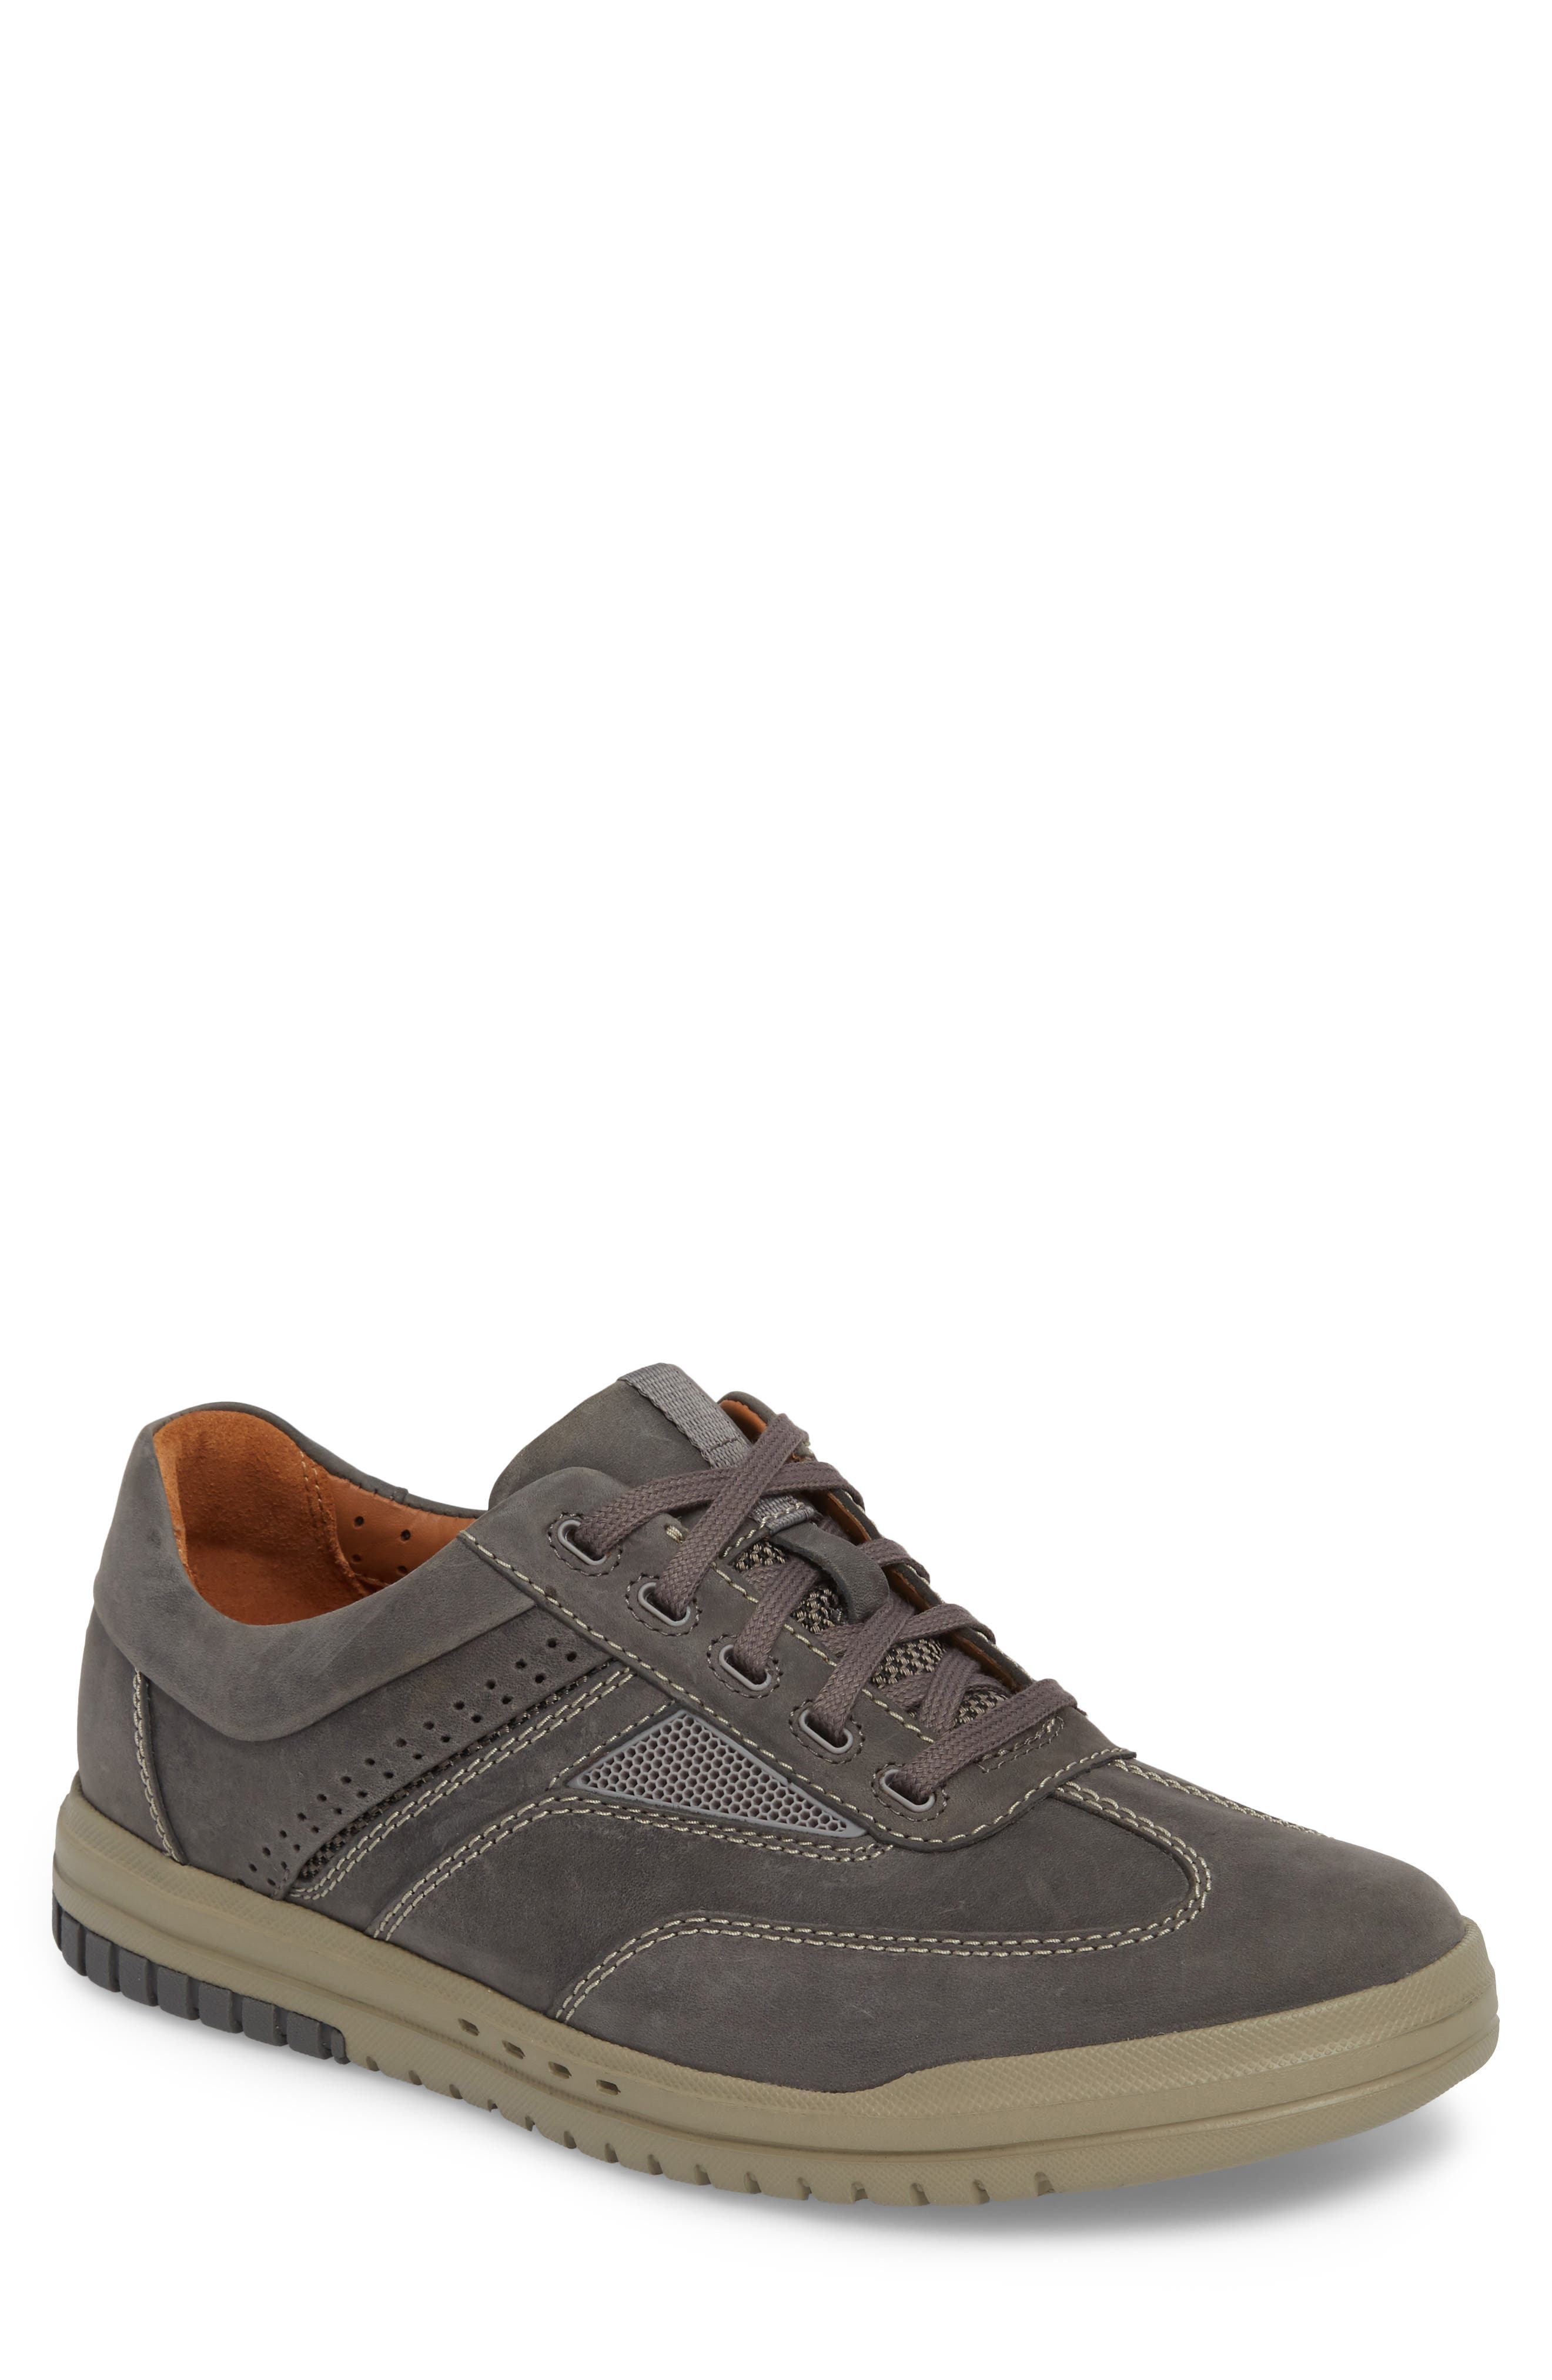 Unrhombus Low Top Sneaker,                             Main thumbnail 1, color,                             Dark Grey Leather